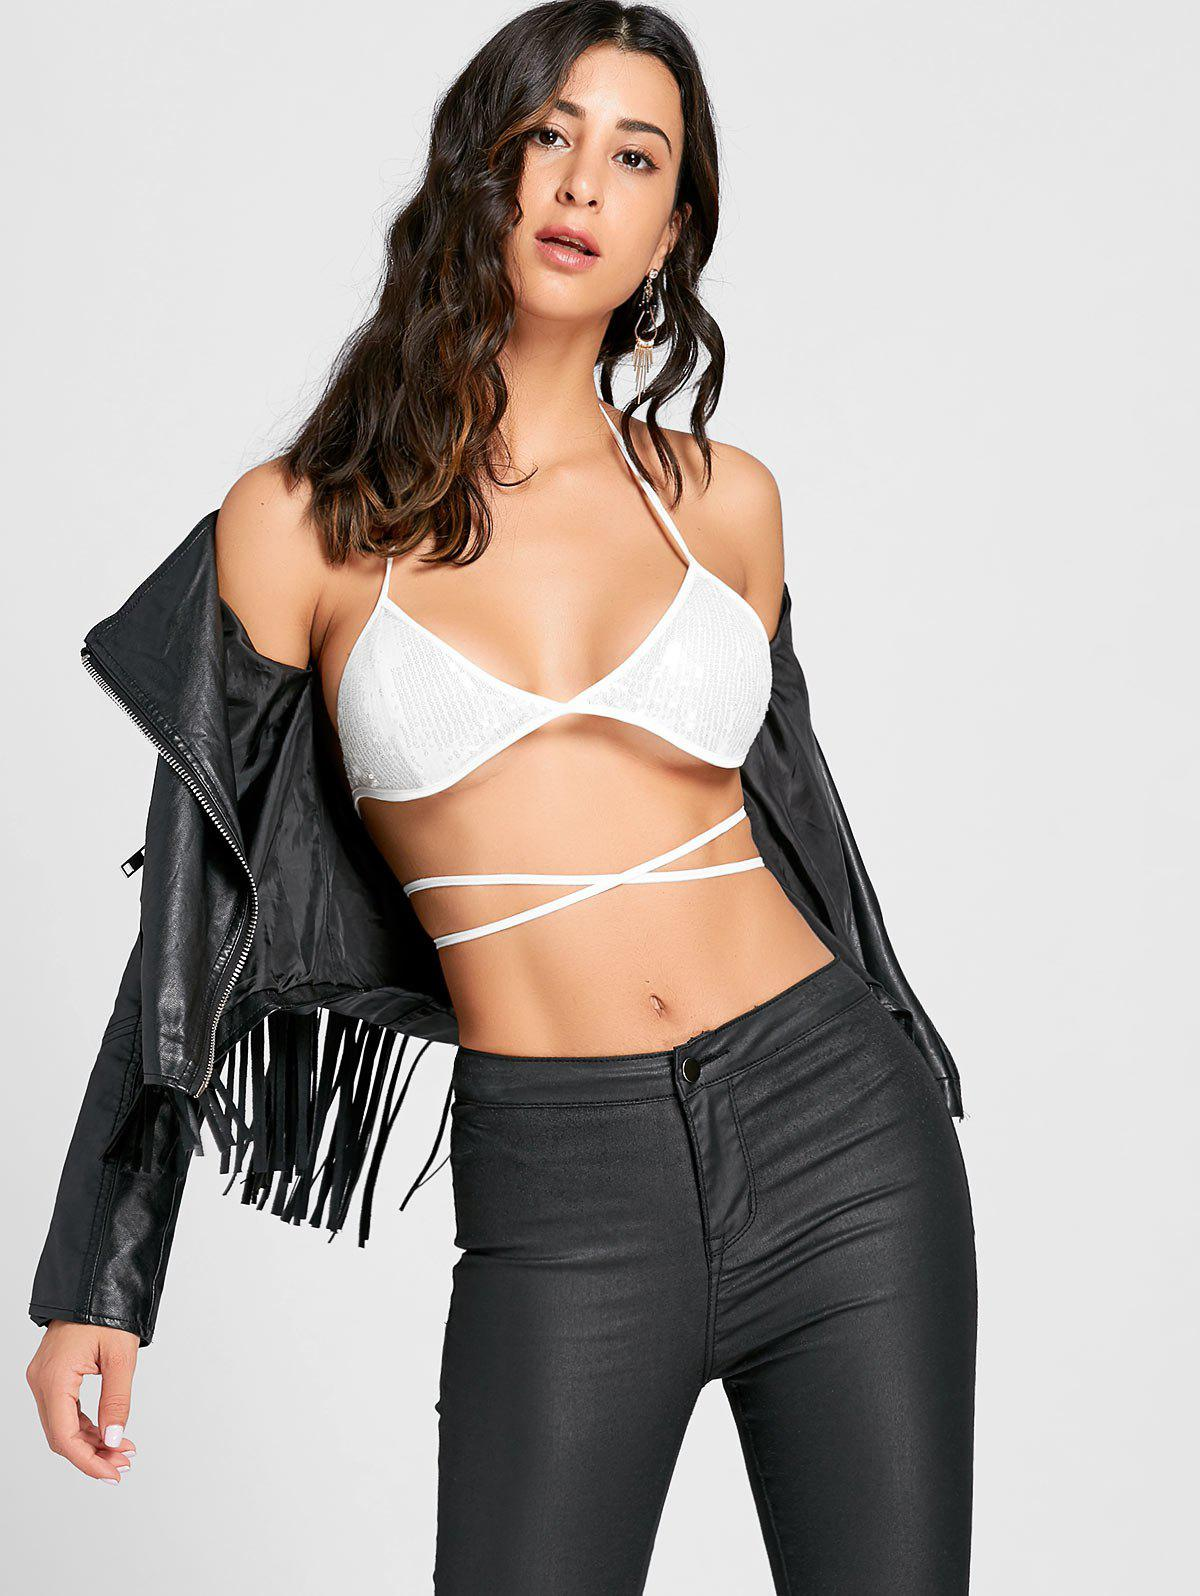 Sequins Lace Up Halter Bra Top - WHITE S